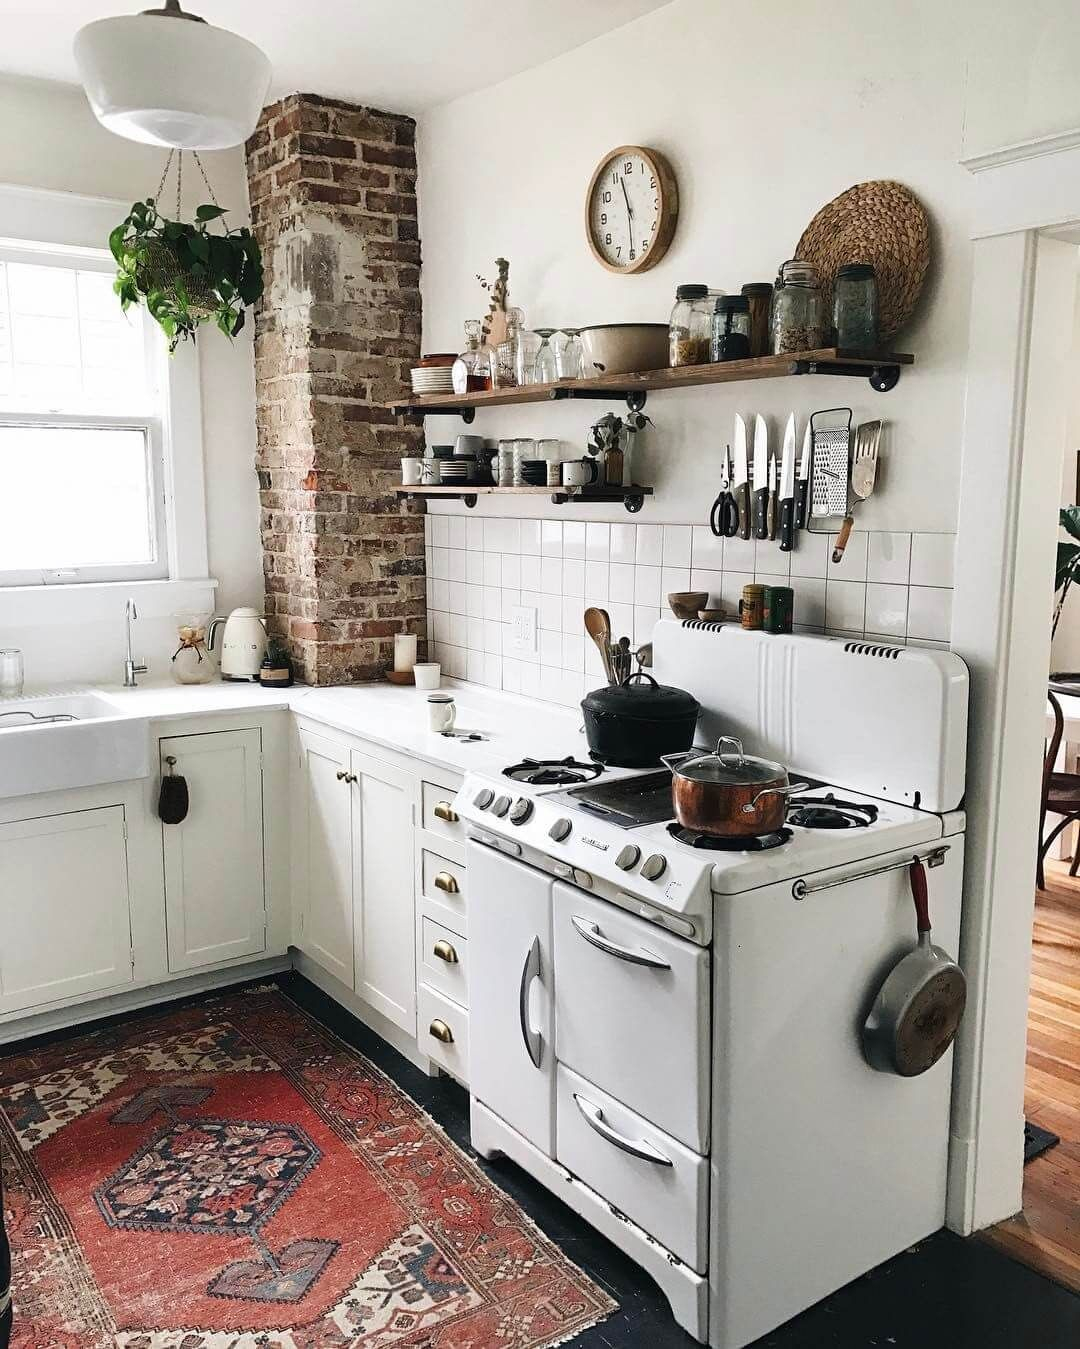 23 Delightful Cottage Kitchen Design And Decorating Ideas That Will Add Charm To Your Home Kitchen Remodel Small Cottage Kitchen Design Kitchen Remodel